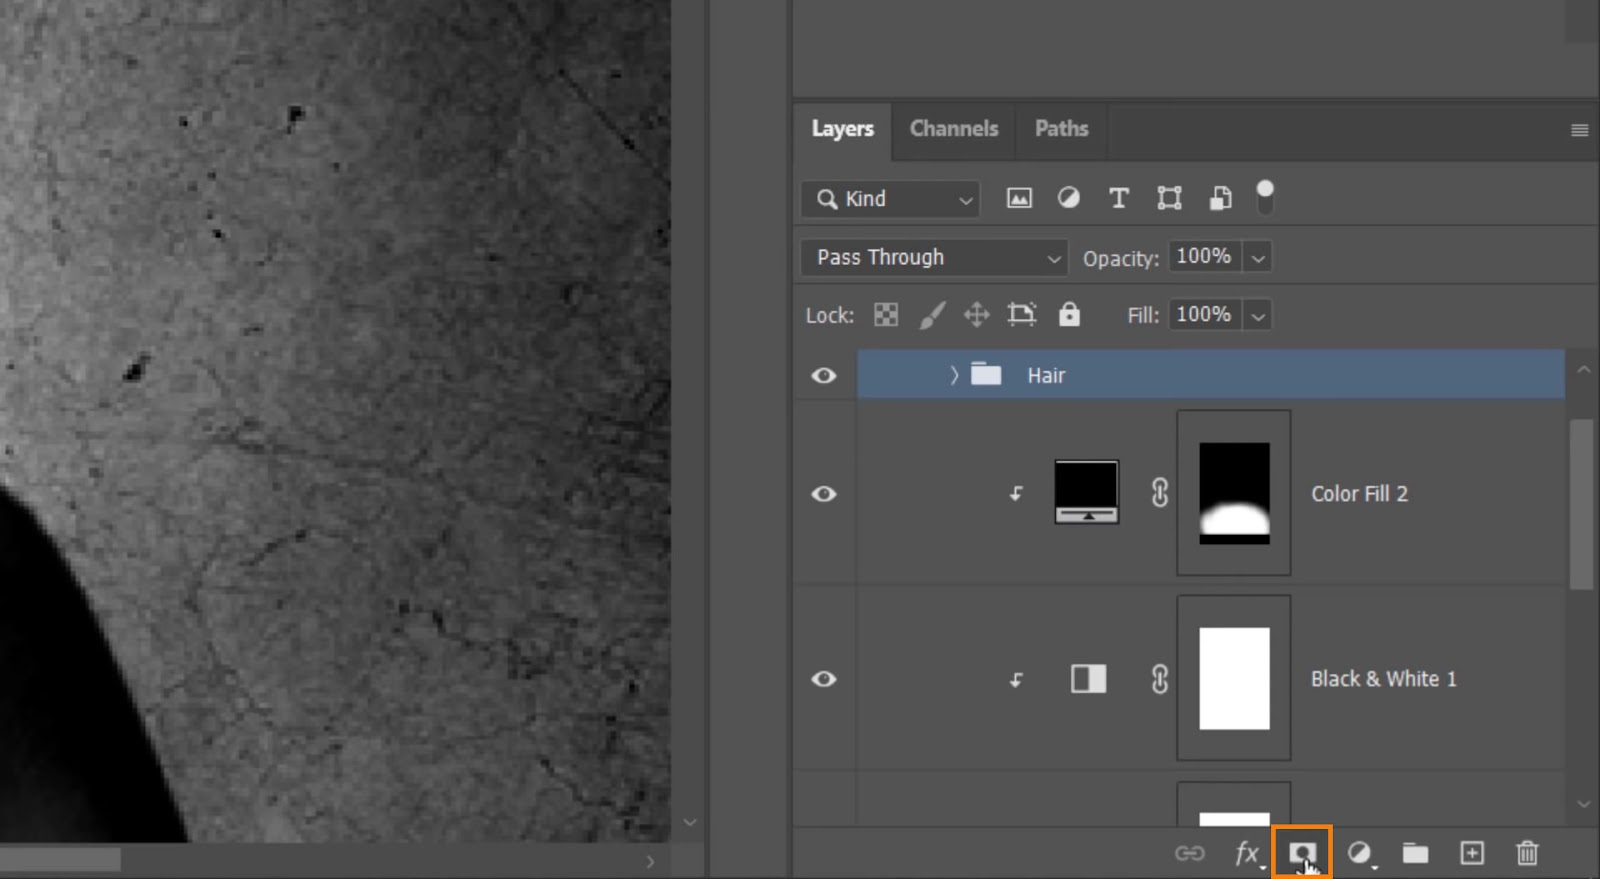 Click on the Layer Mask icon to create a layer mask